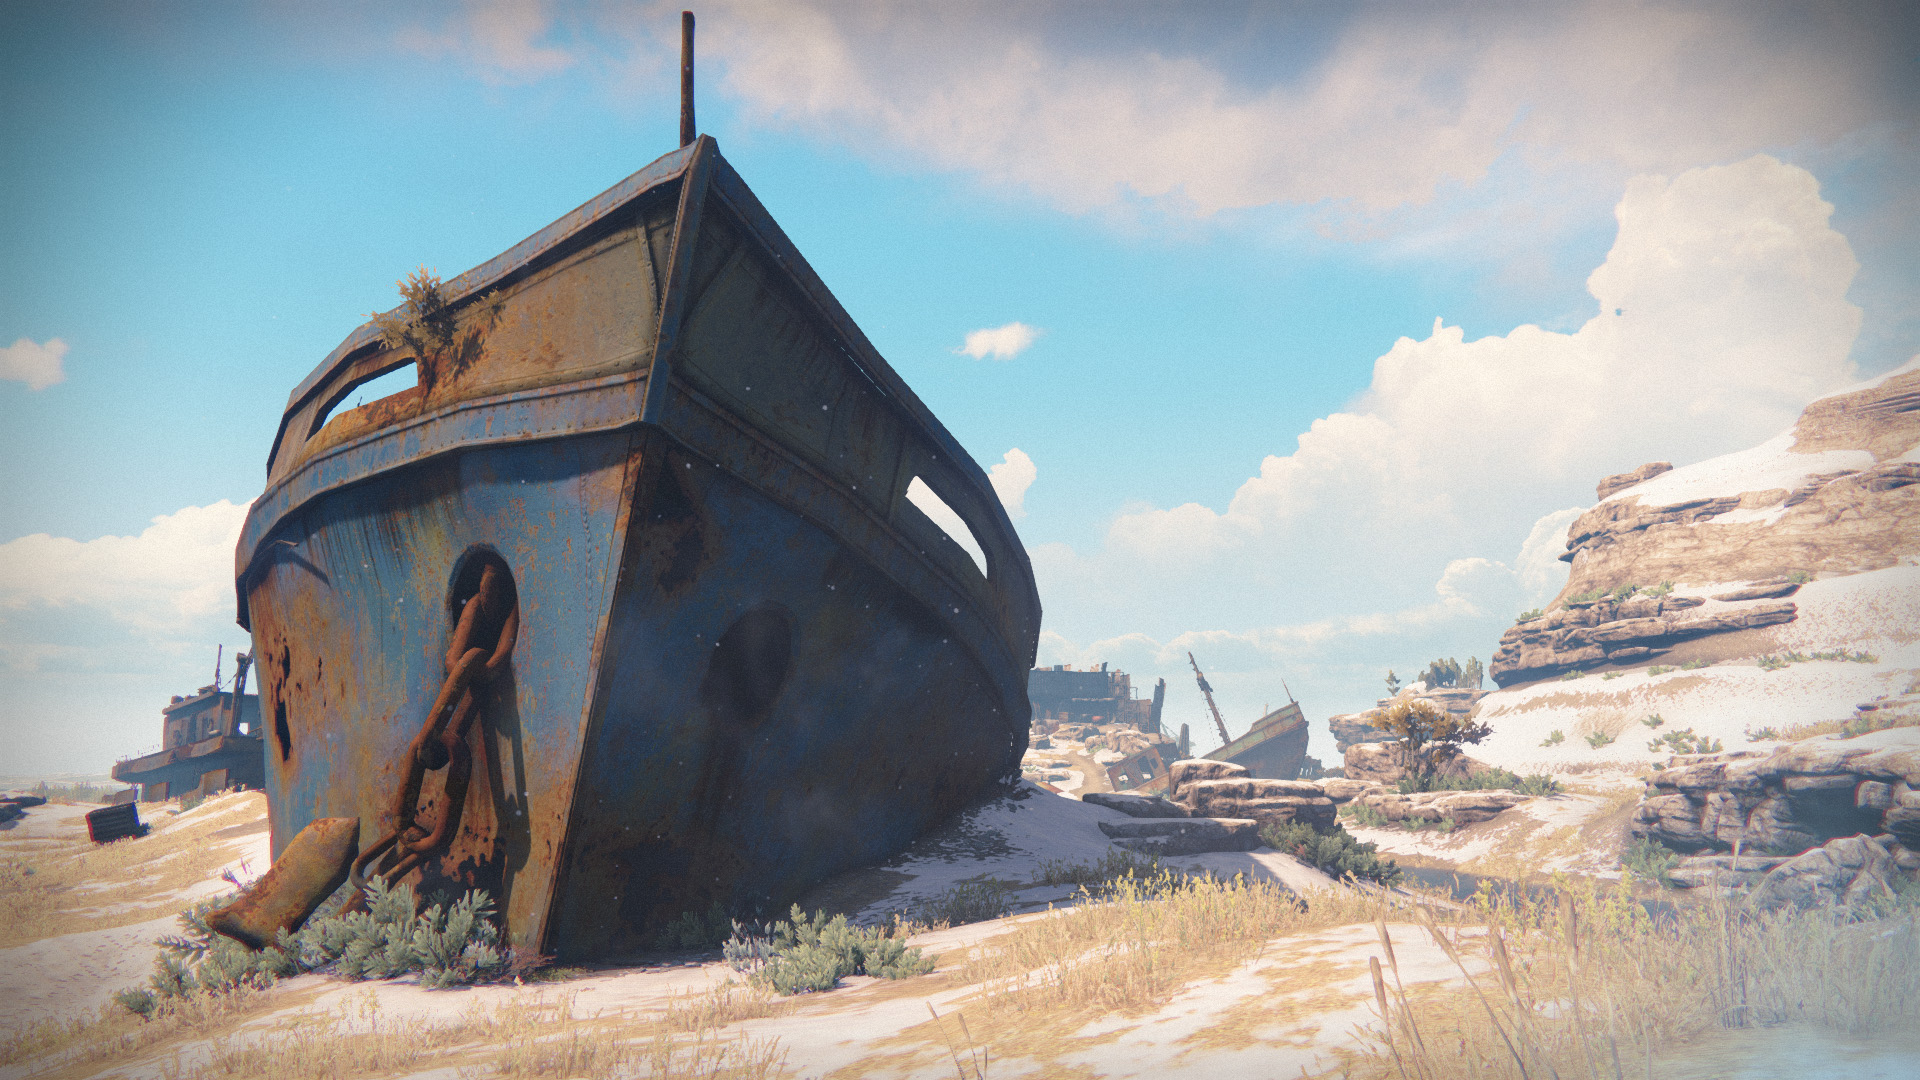 a boat lies rusted and grounded on snowy wastes